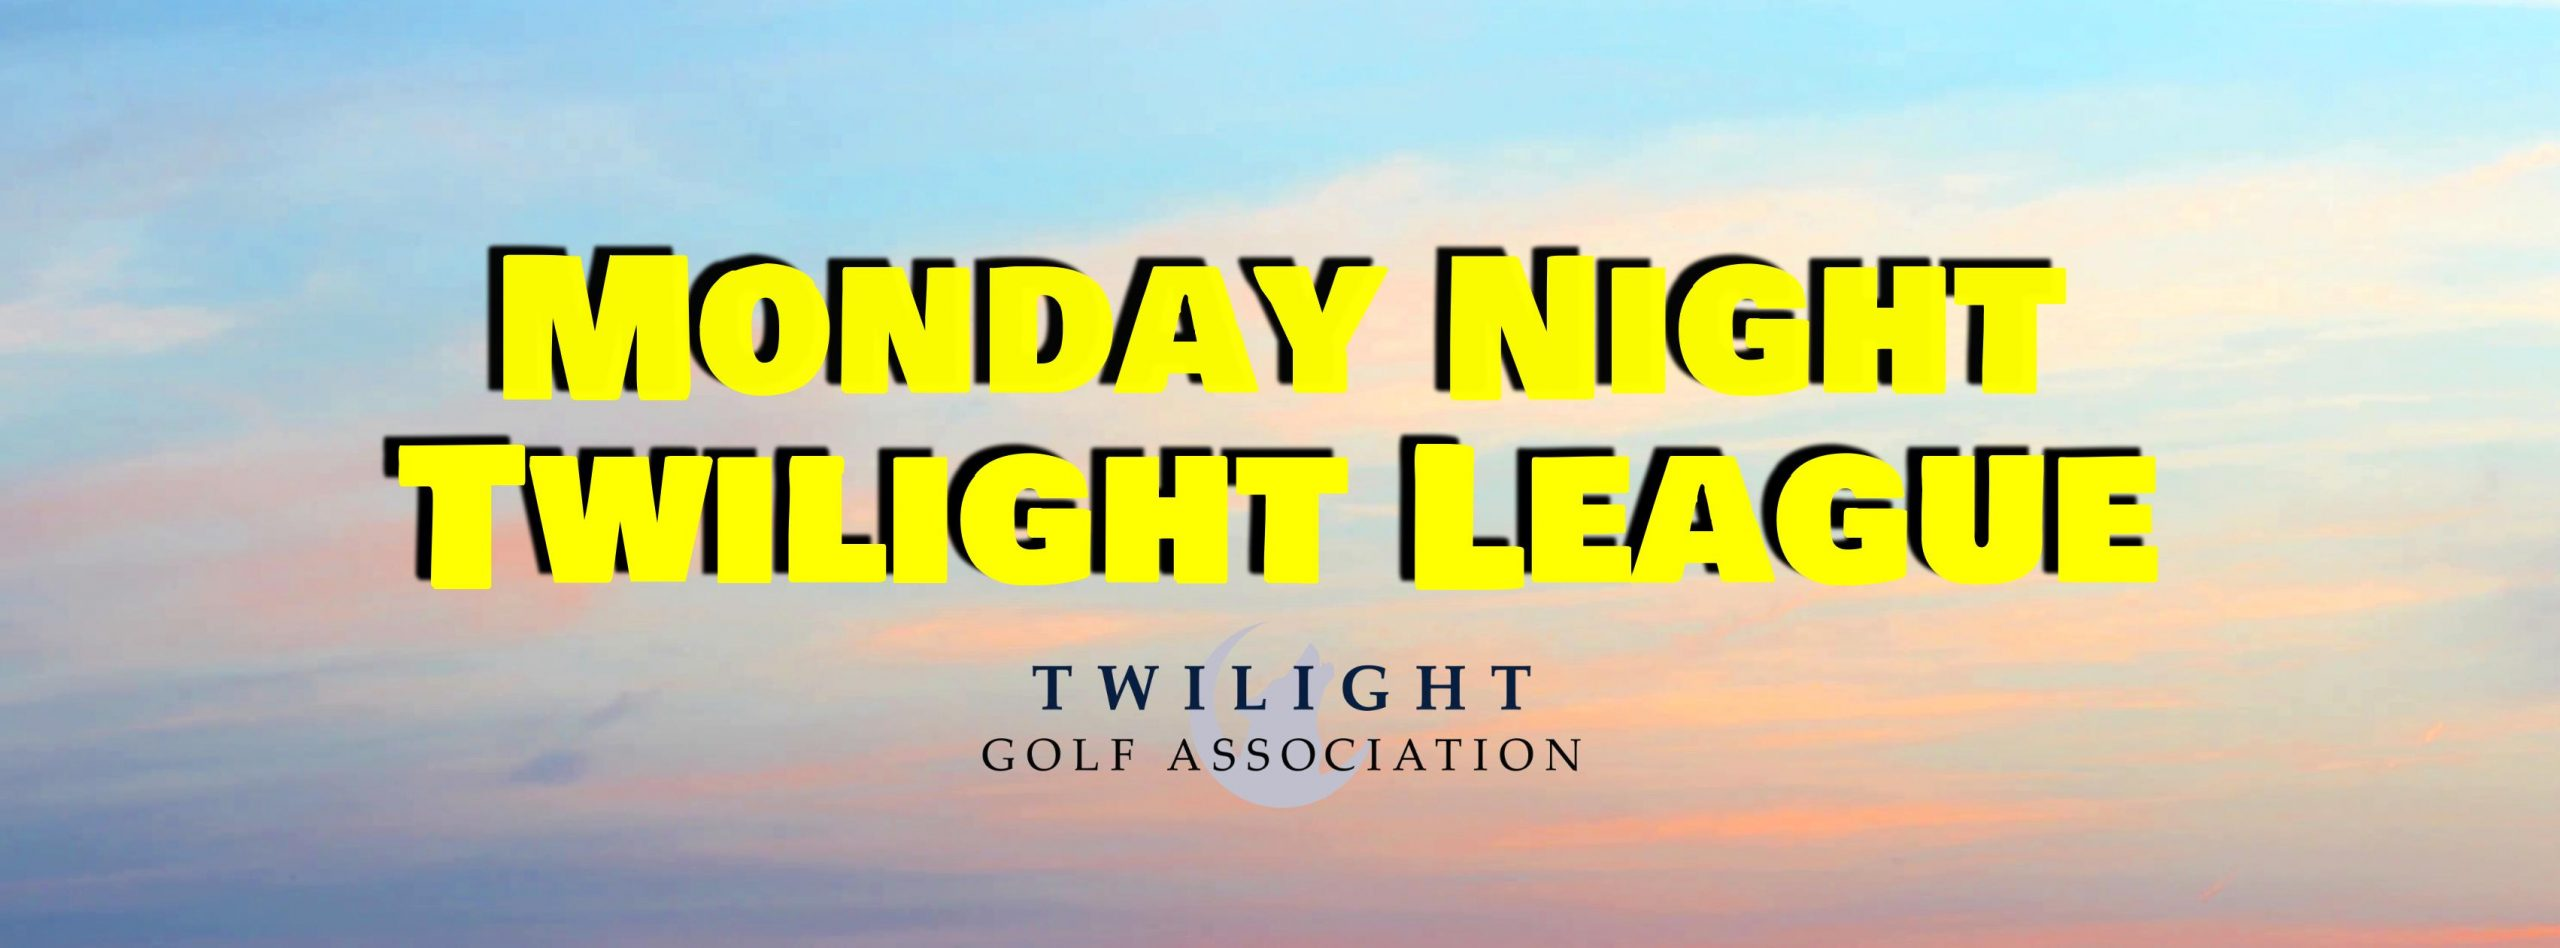 Monday Twilight League at DeBell Golf Club